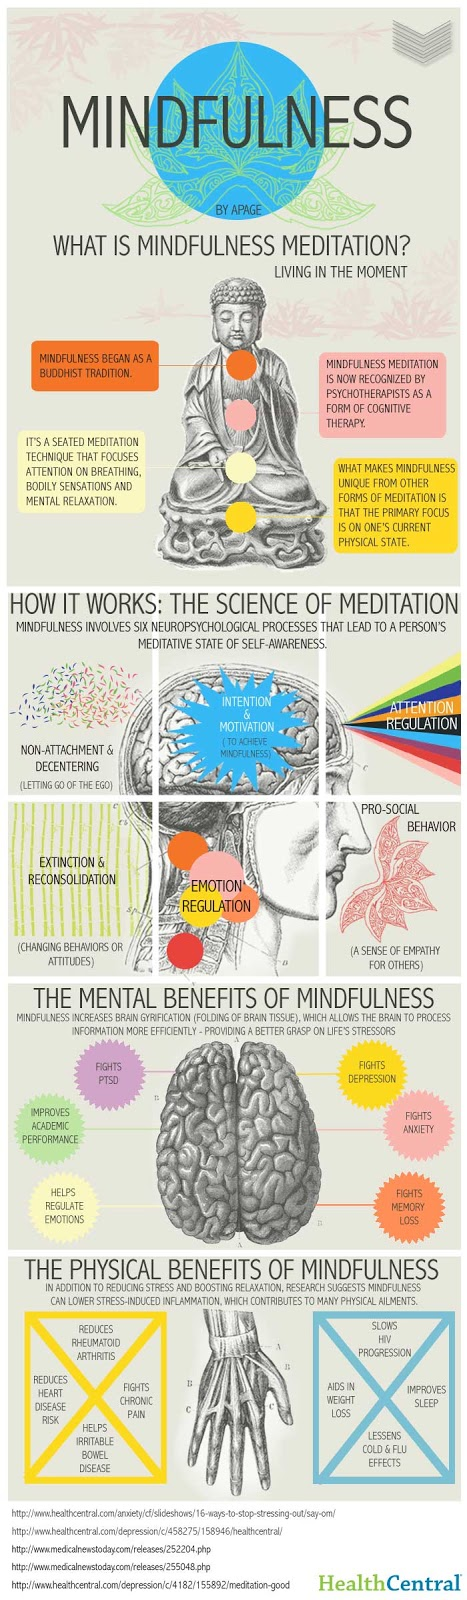 http://www.elephantjournal.com/2014/03/14-benefits-of-mindfulness-how-it-works-infographic/